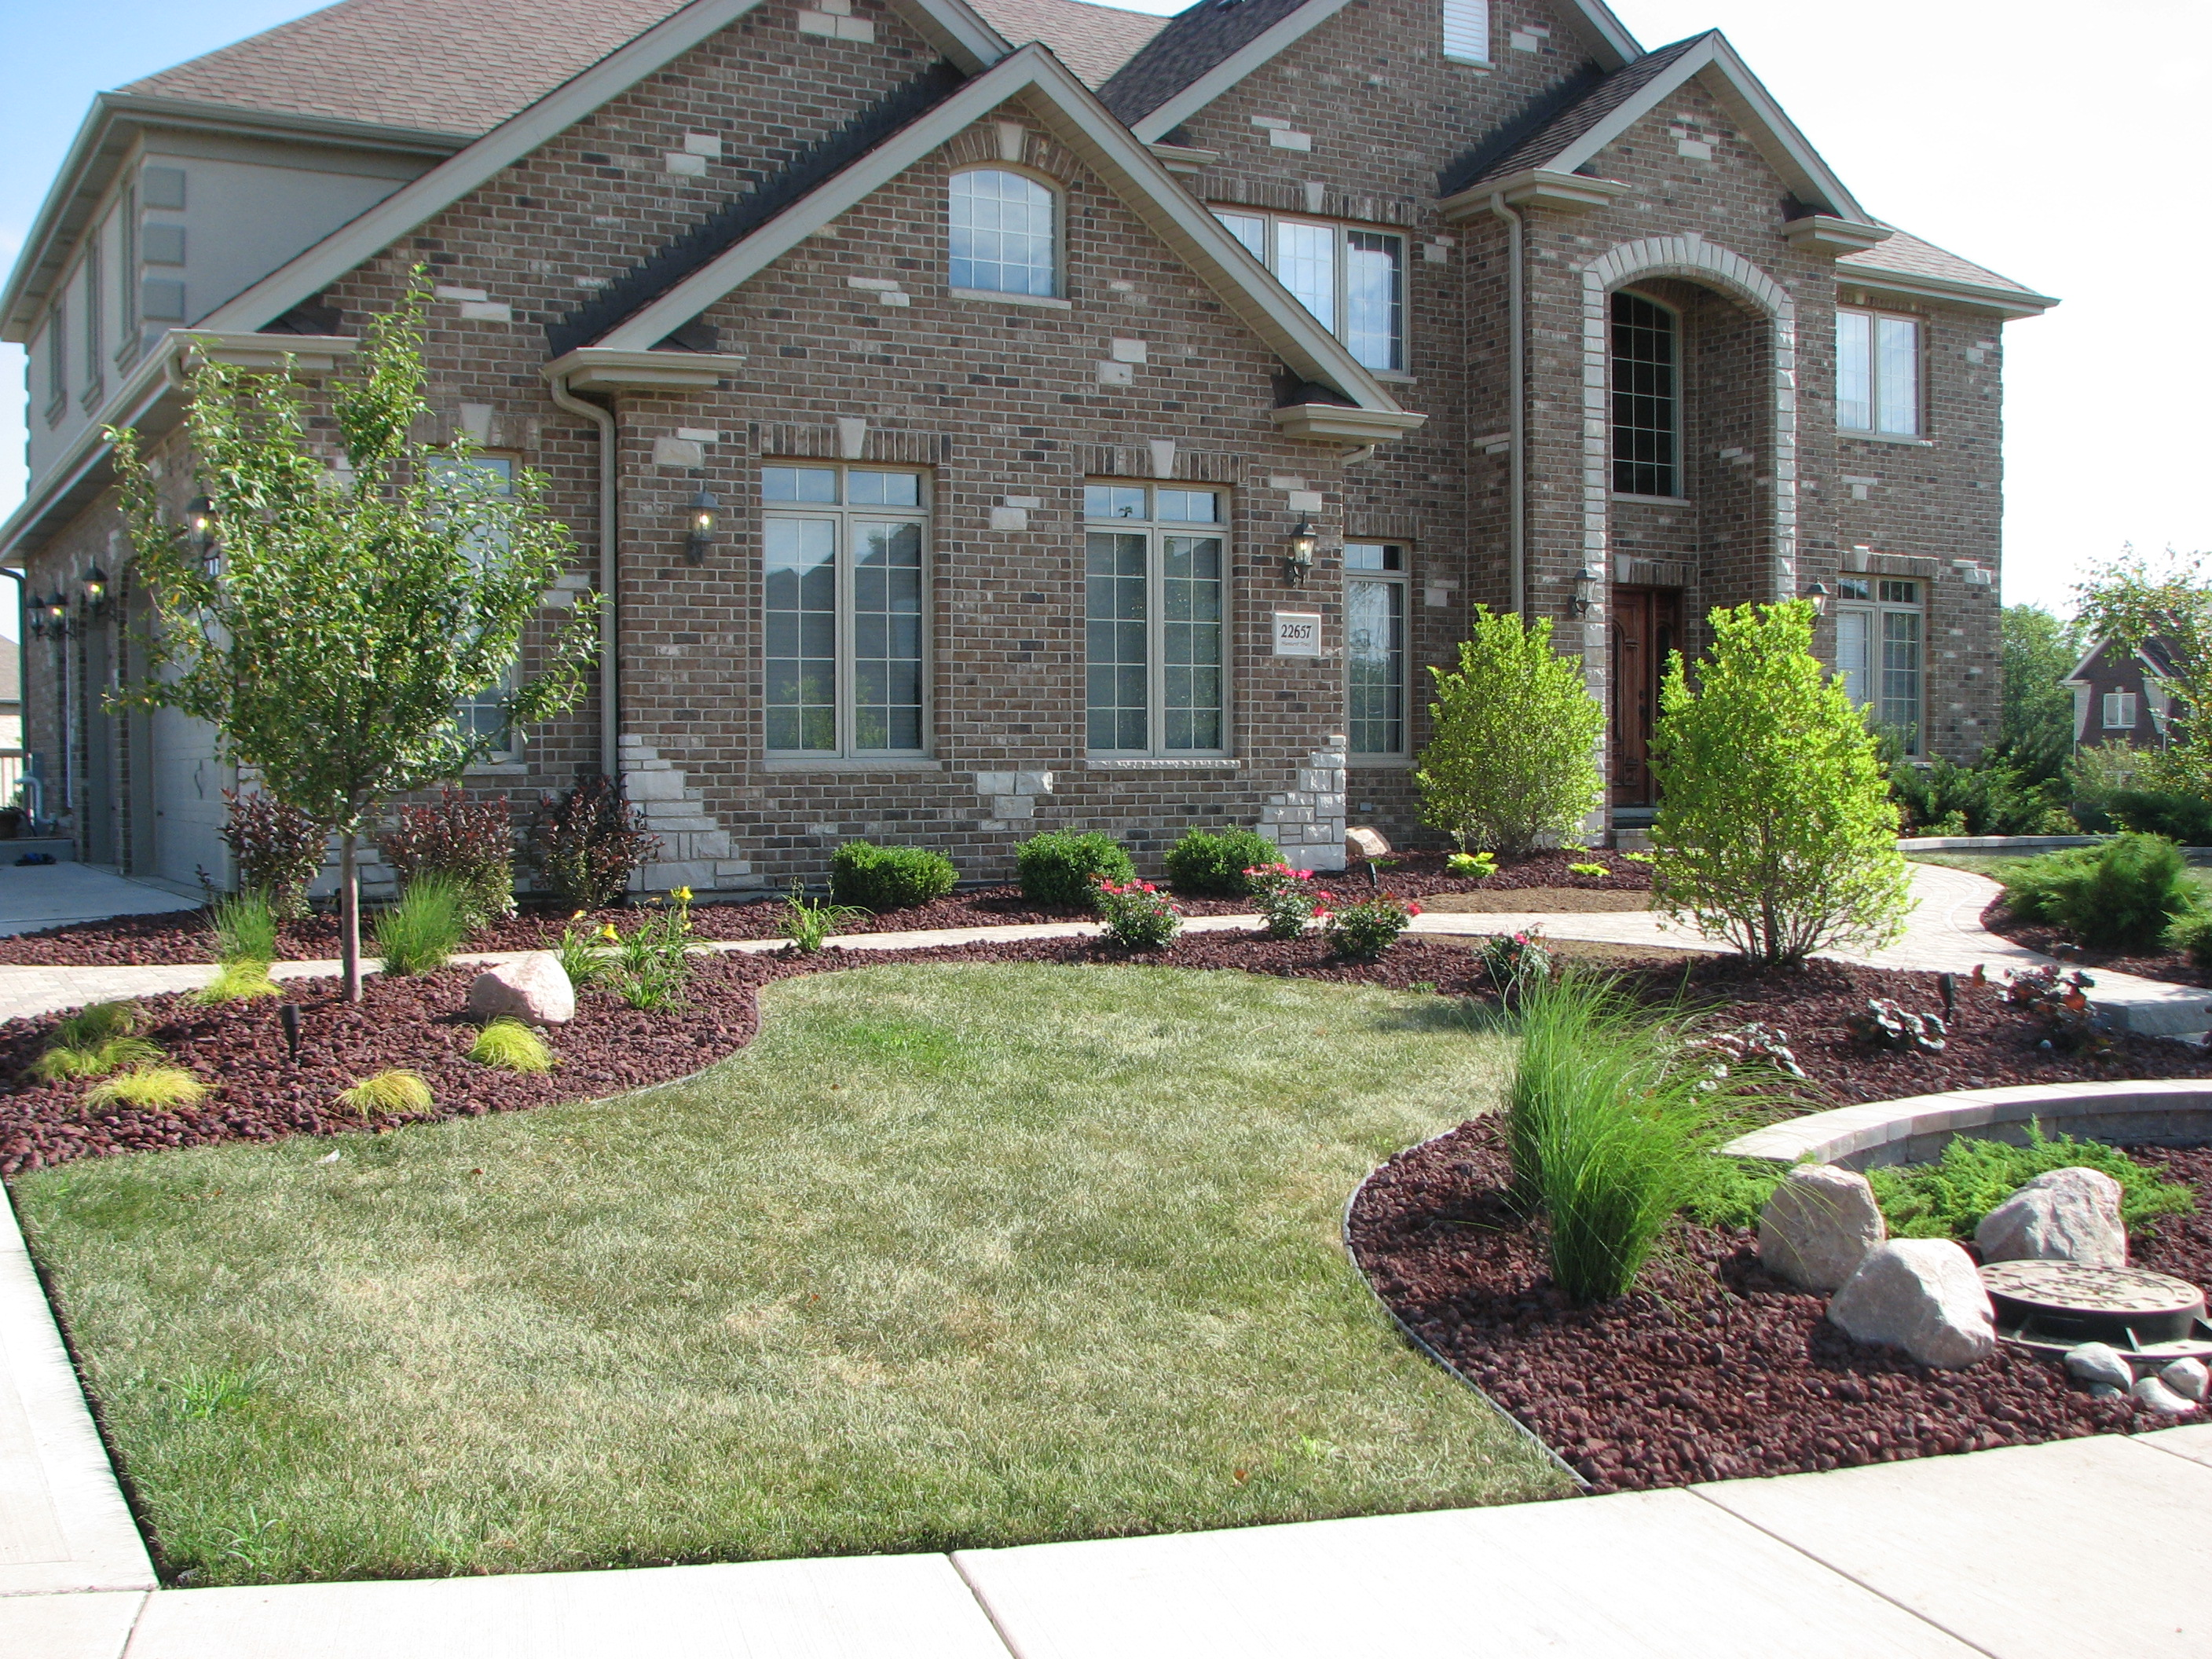 design the appealing home landscaping at your place – carehomedecor - these are the tips by which you can use to design the best landscape atyour place you can also add some lighting for night time